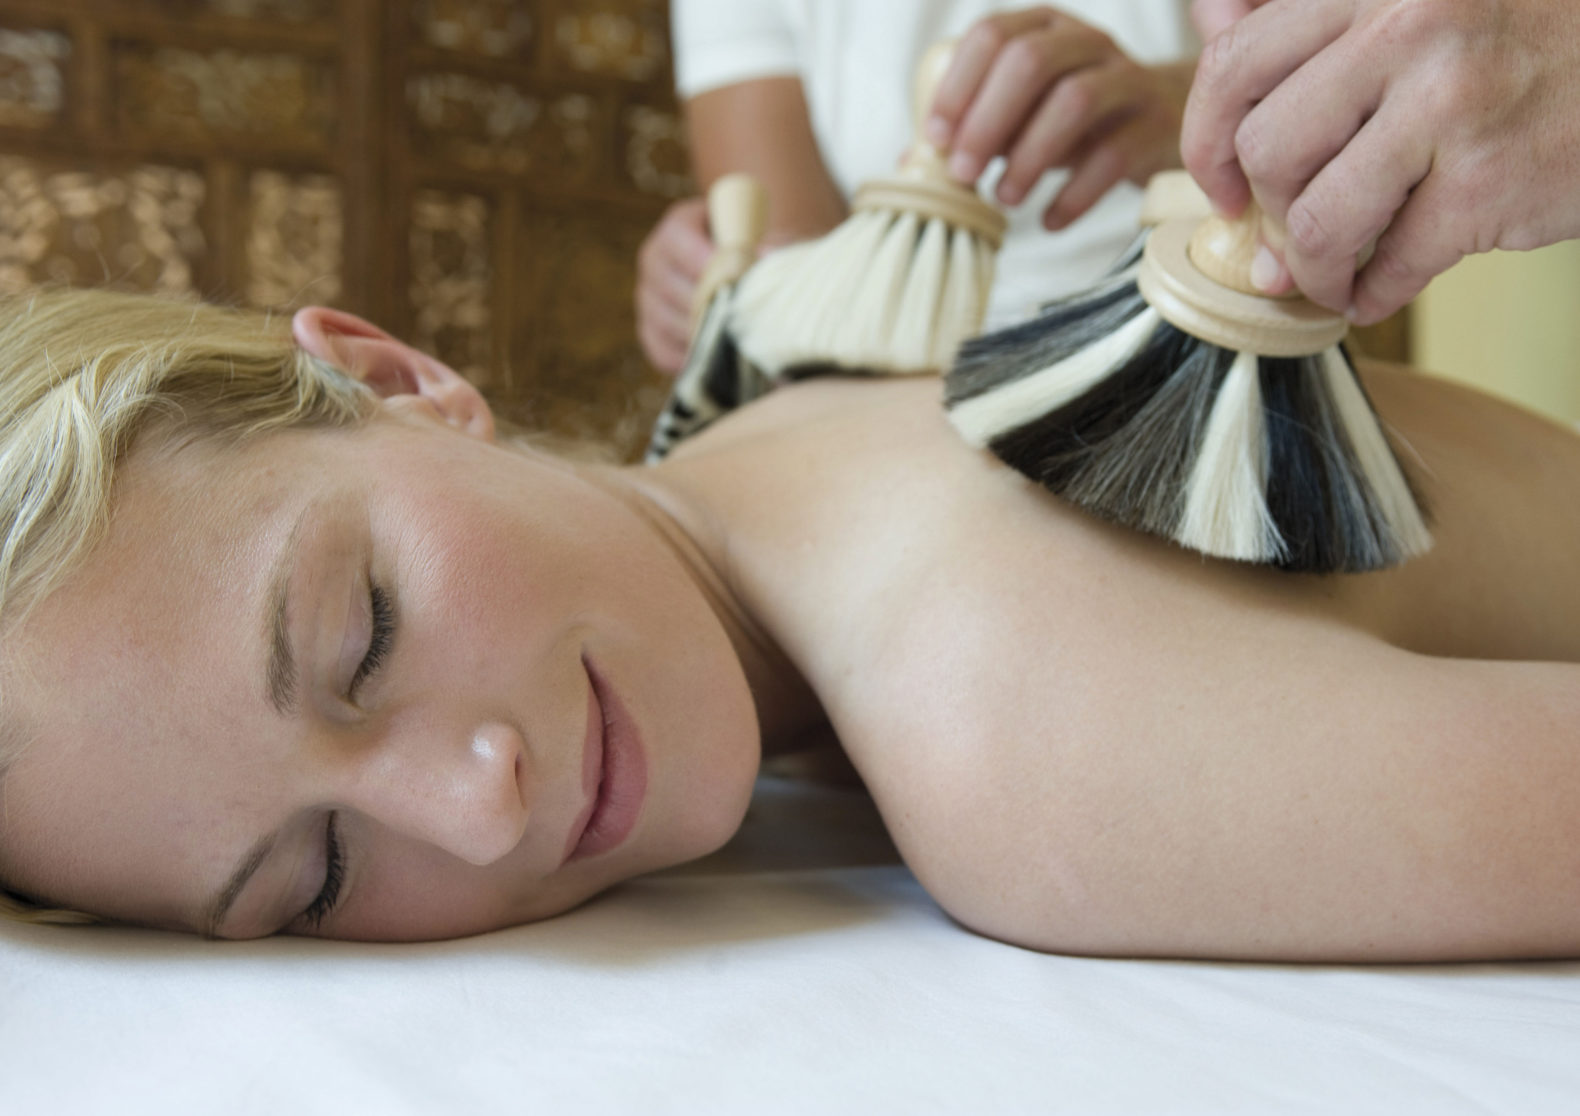 woman-ayurvedic-massage-cleansing-relax-ritual-india--hotel-ayurveda-parkschloesschen-germany